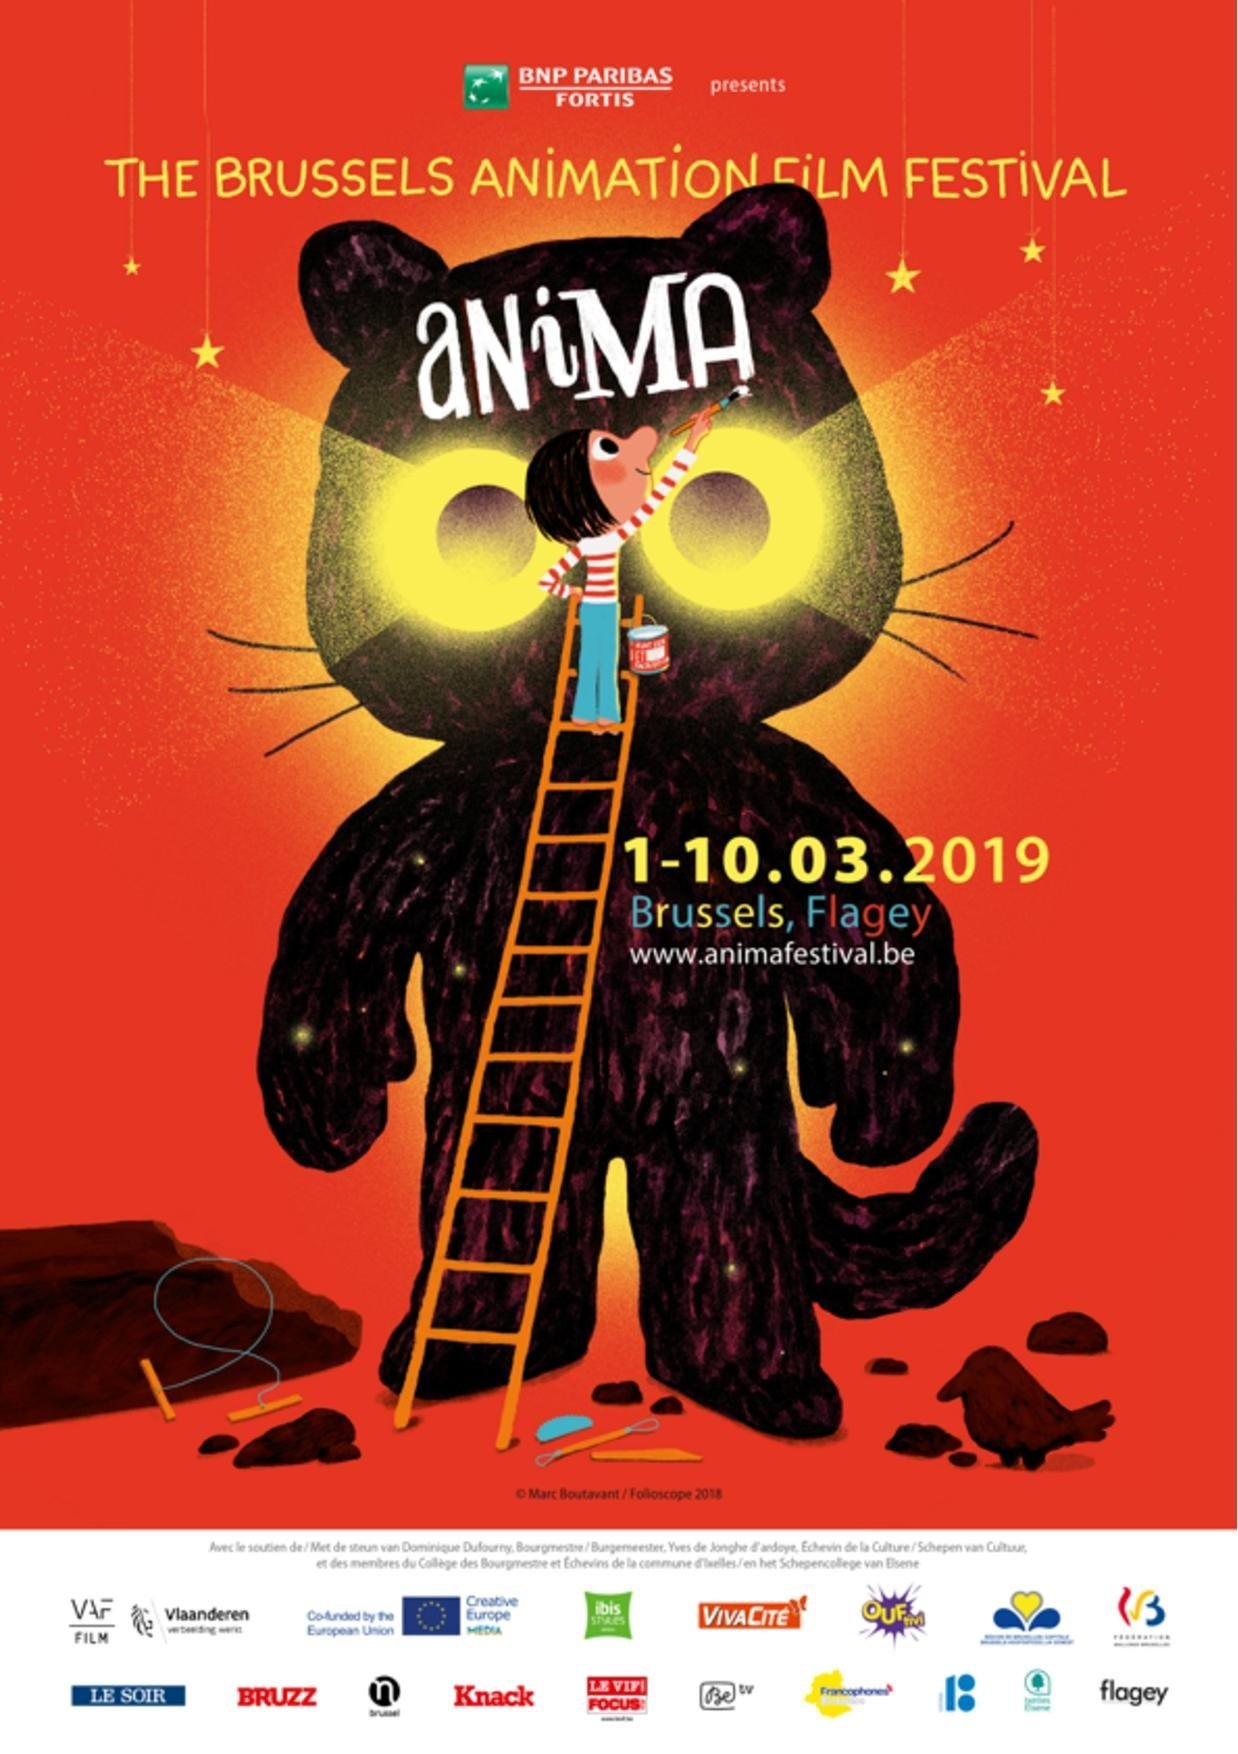 AMPLO NEWSLETTER Q4 2018 - Anima